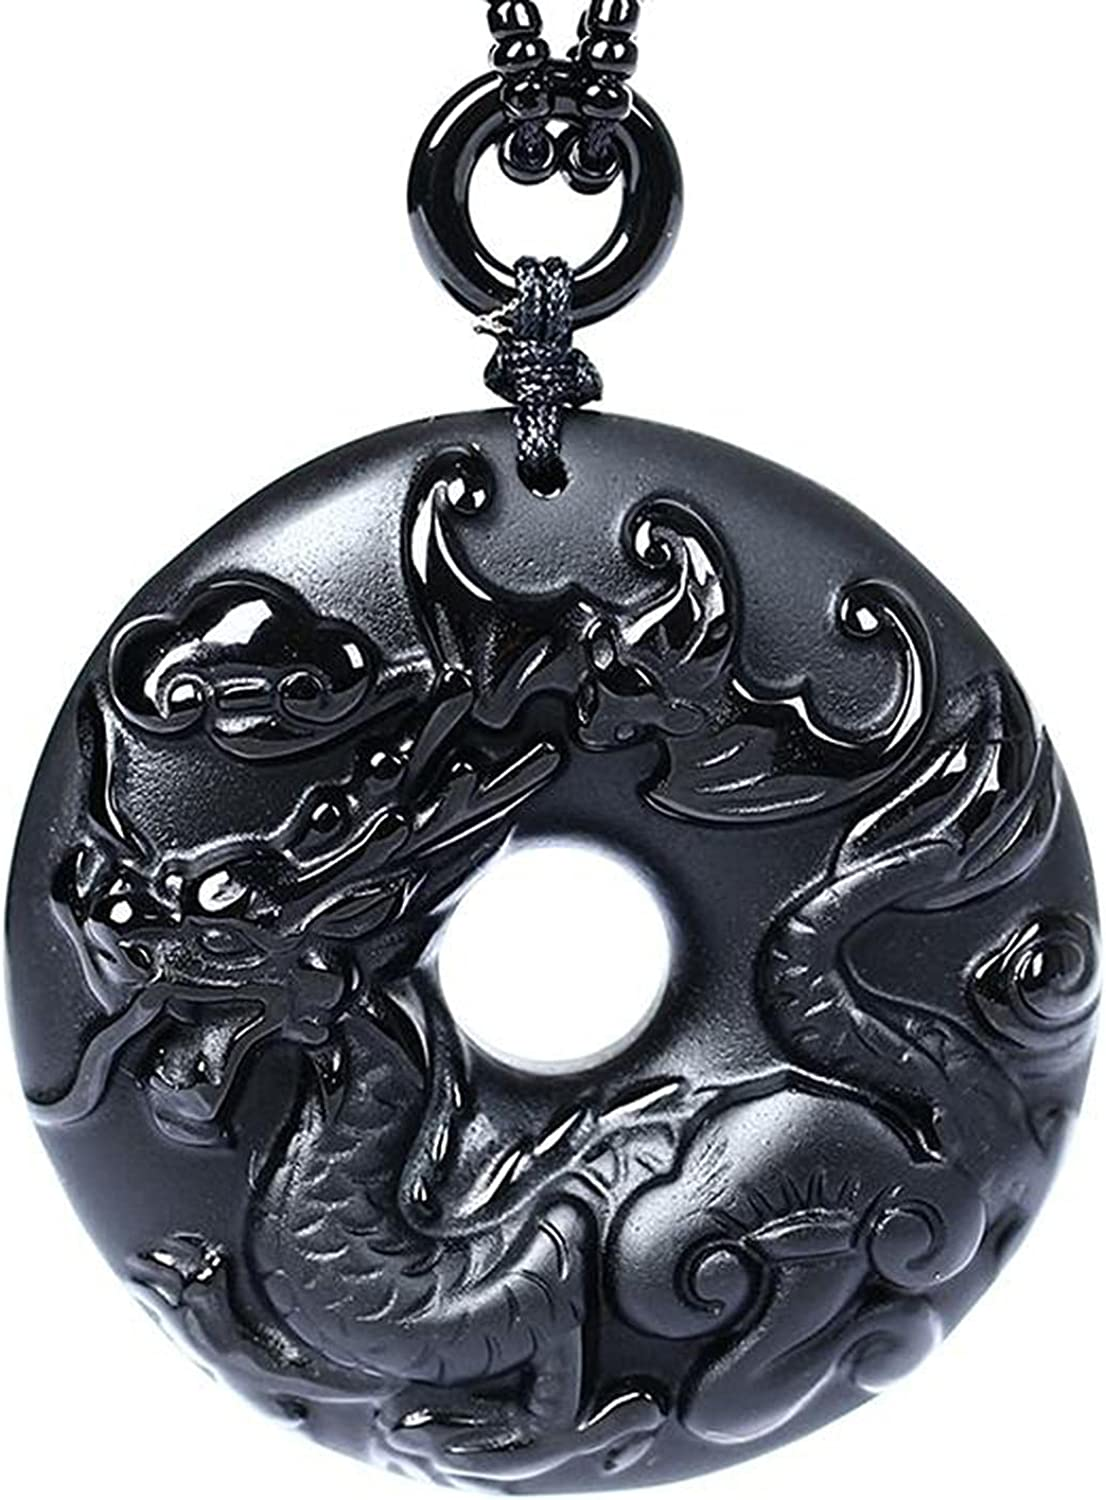 Japan Maker New Natural Black Obsidian Bead Max 45% OFF Necklace B Safety Hand-Carved Dragon